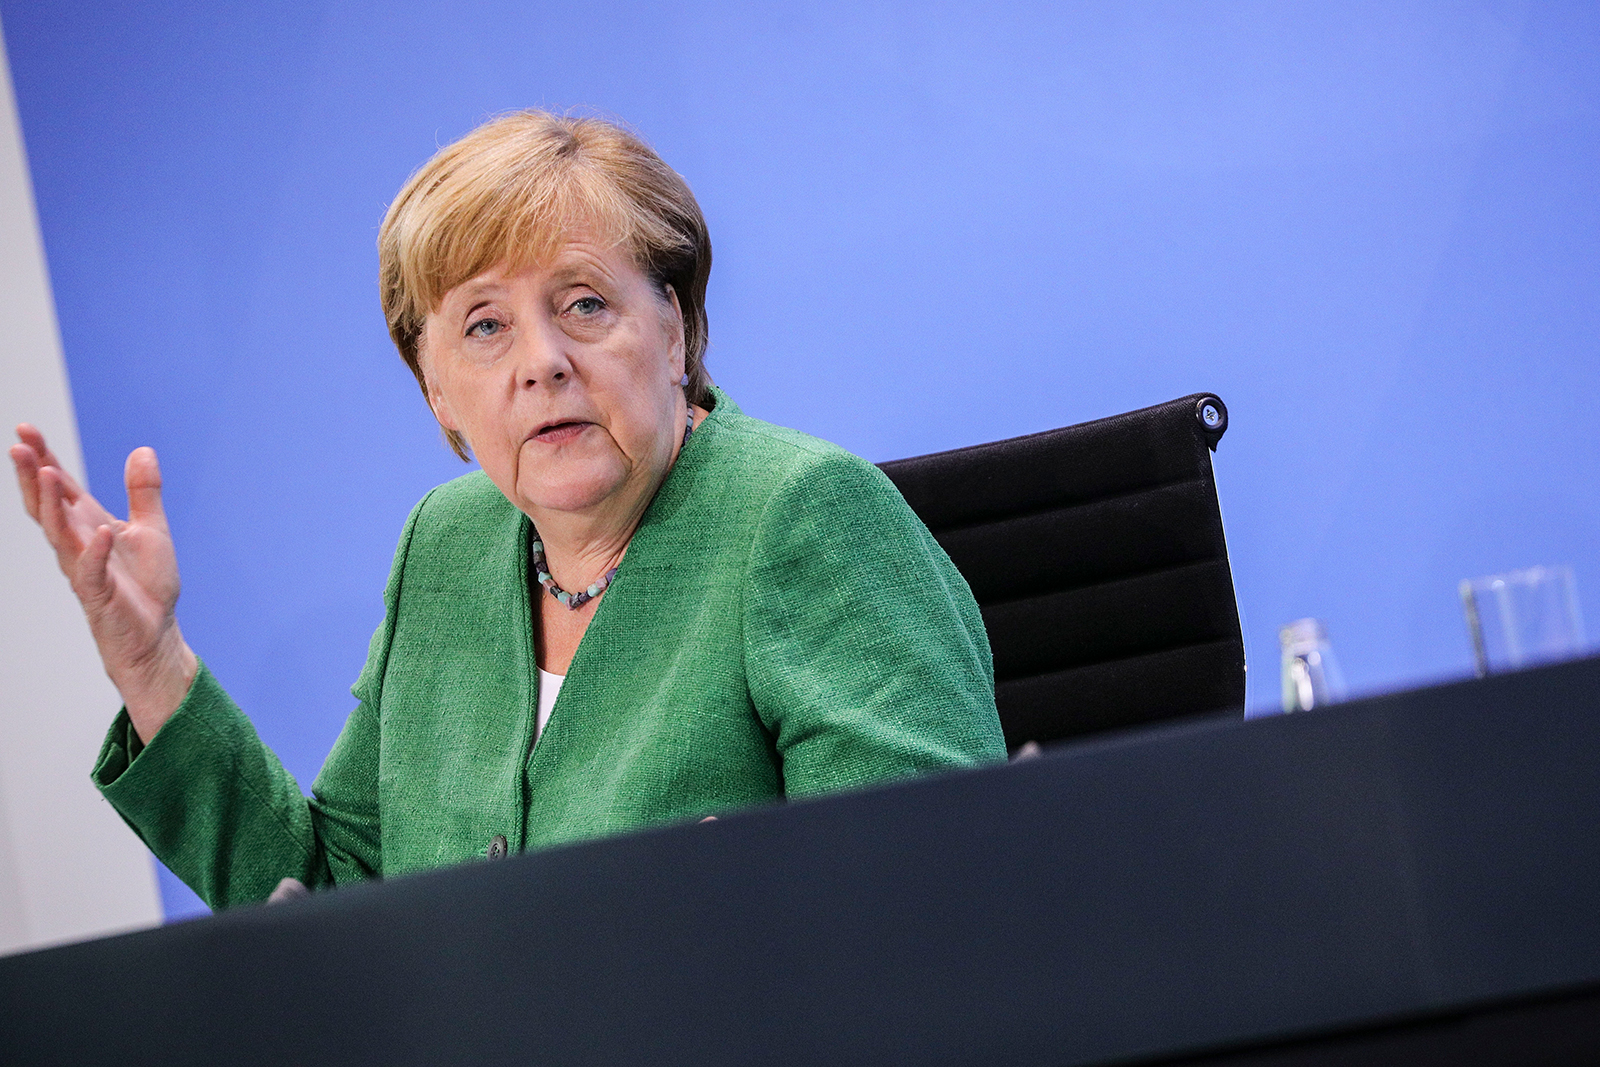 German Chancellor Angela Merkel speaks to the media following a virtual meeting with governors of Germany's 16 states at the Chancellery during the coronavirus pandemic in Berlin, on August 27